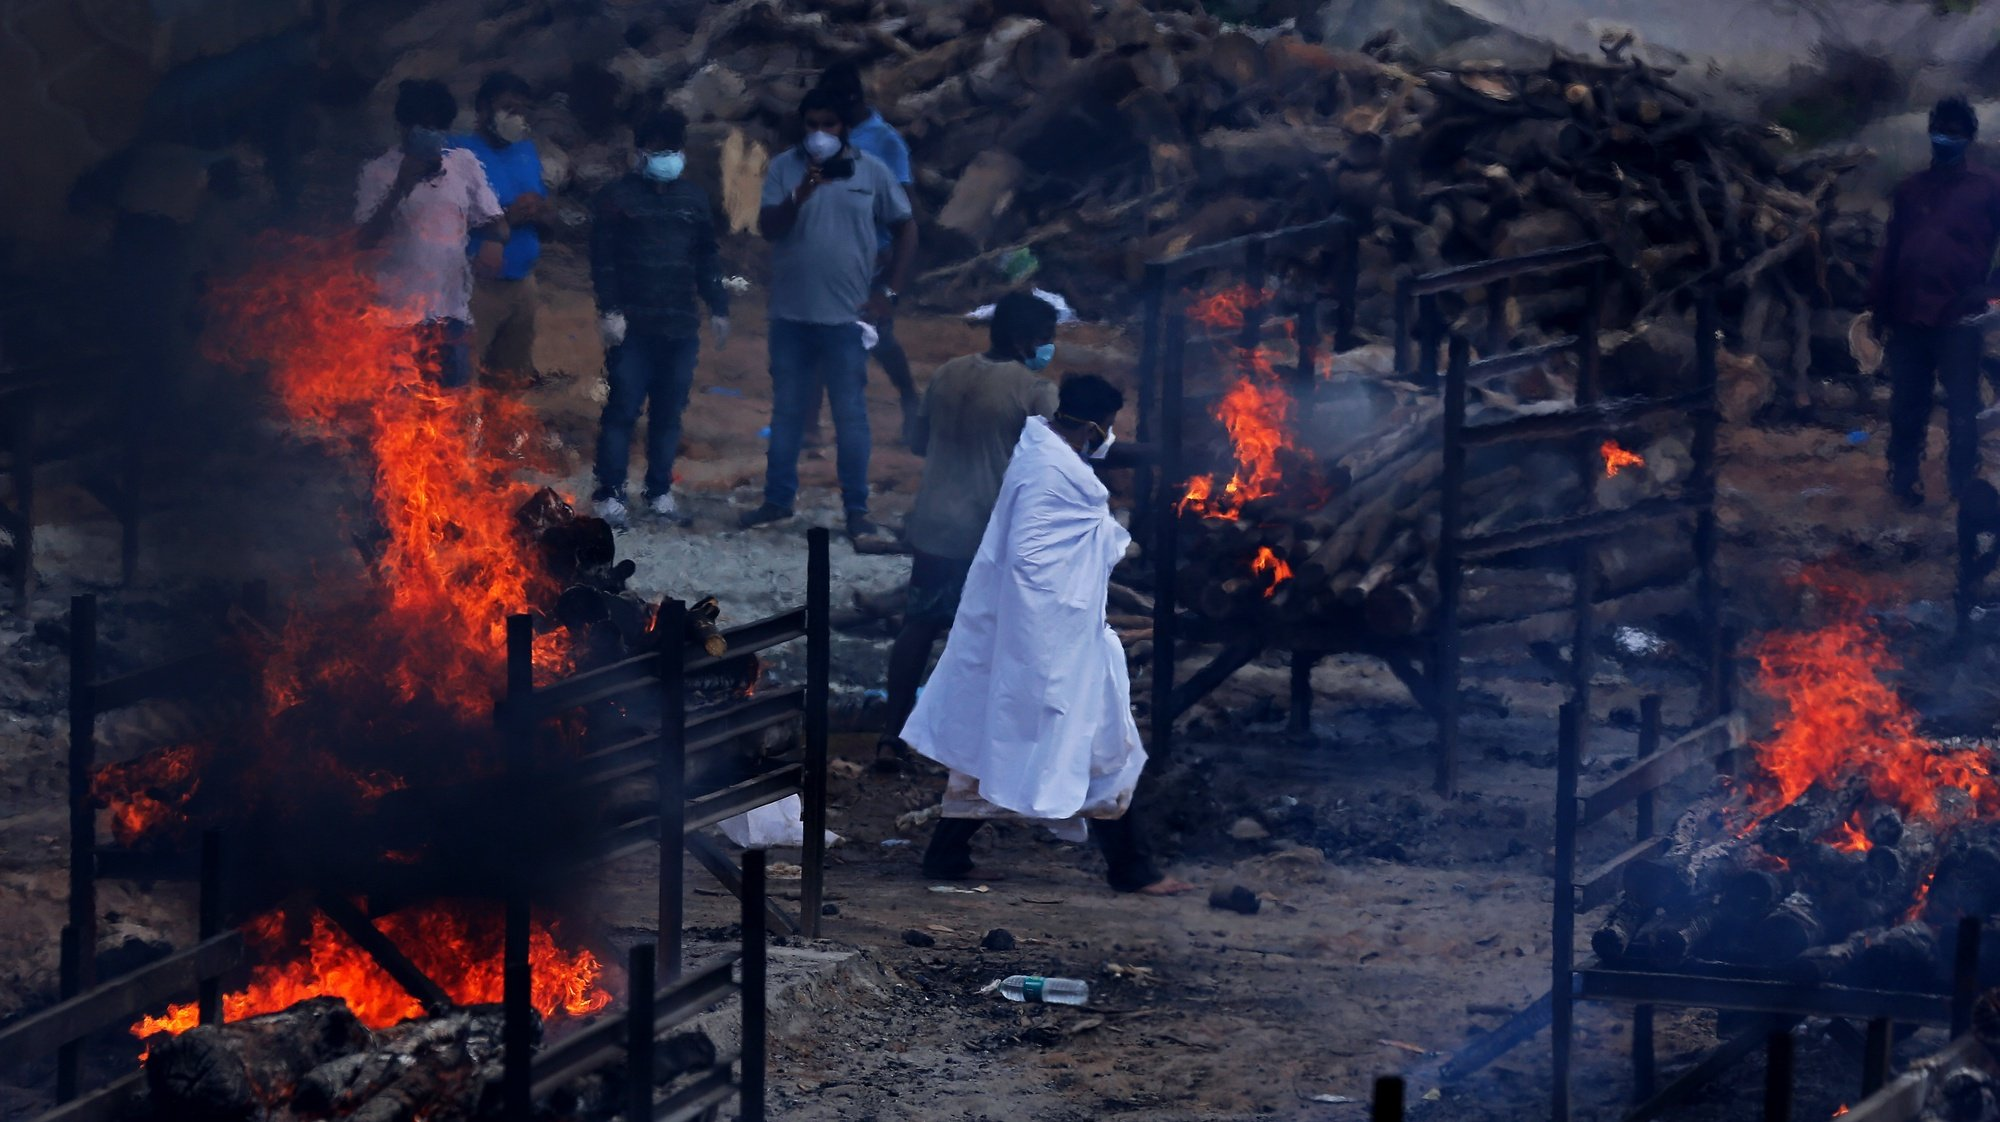 epaselect epa09209124 Funeral pyres for COVID-19 victims burn during a mass funeral at a makeshift cremation ground at Giddenahalli in the outskirts of Bangalore, India, 18 May 2021. India surpassed 25 million cases of the coronavirus on 18 May since the start of the pandemic, despite a decline in infections in recent days, while also recording a new daily record of 4,329 deaths. The country registered 263,533 infections in the last 24 hours, according to data from the Indian Ministry of Health, the lowest number in a month after India reported a record of over 400,000 cases everyday two weeks ago. The total Covid-19 toll now stands at 25.2 million cases - second highest after the United States - and 278,719 deaths - third highest after the US and Brazil.  EPA/JAGADEESH NV